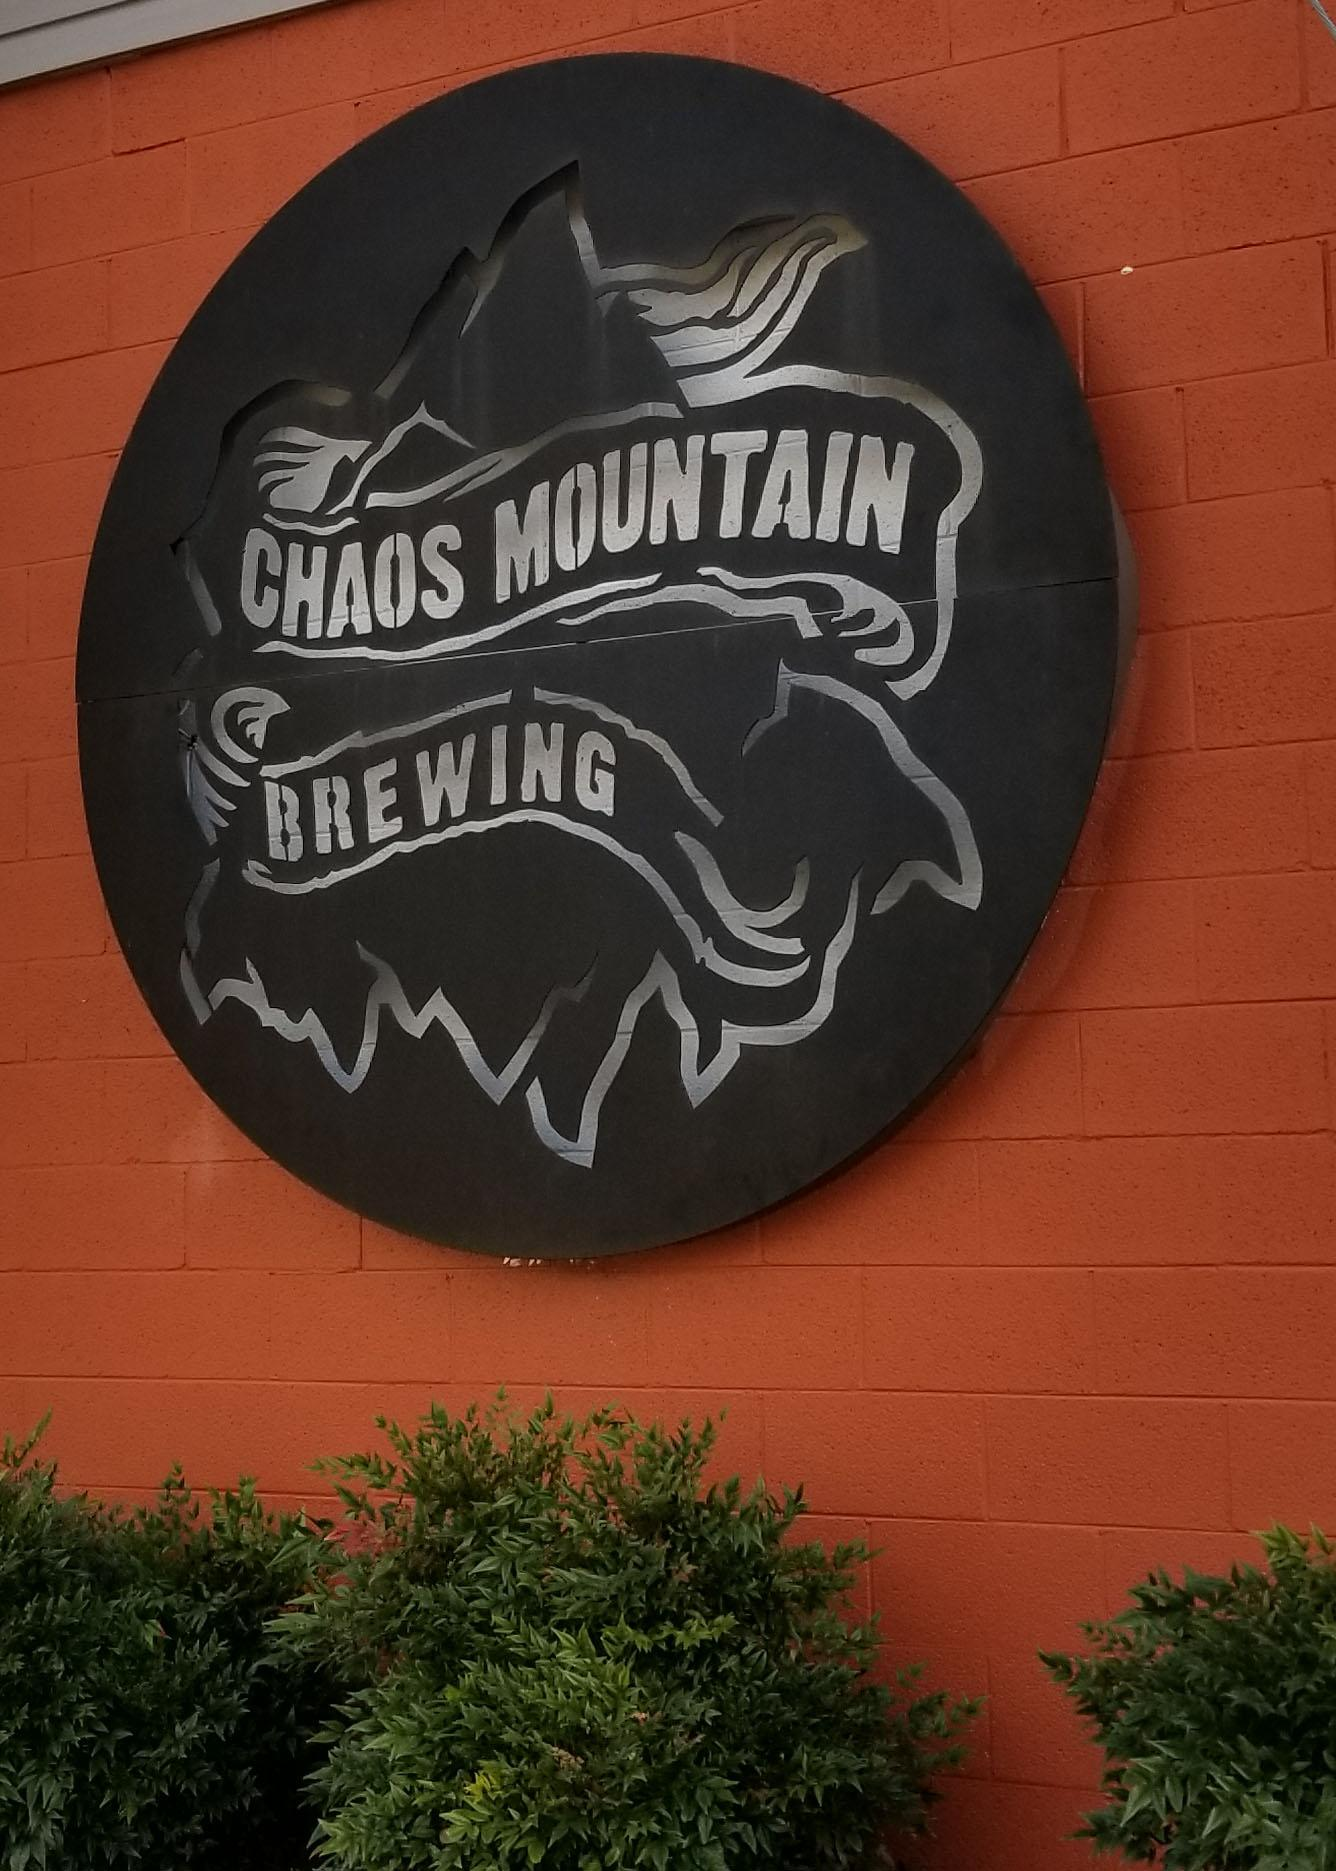 Chaos Mountain Brewing. Franklin County Tourism (Image: Jean Skipper)<br><p><br></p>